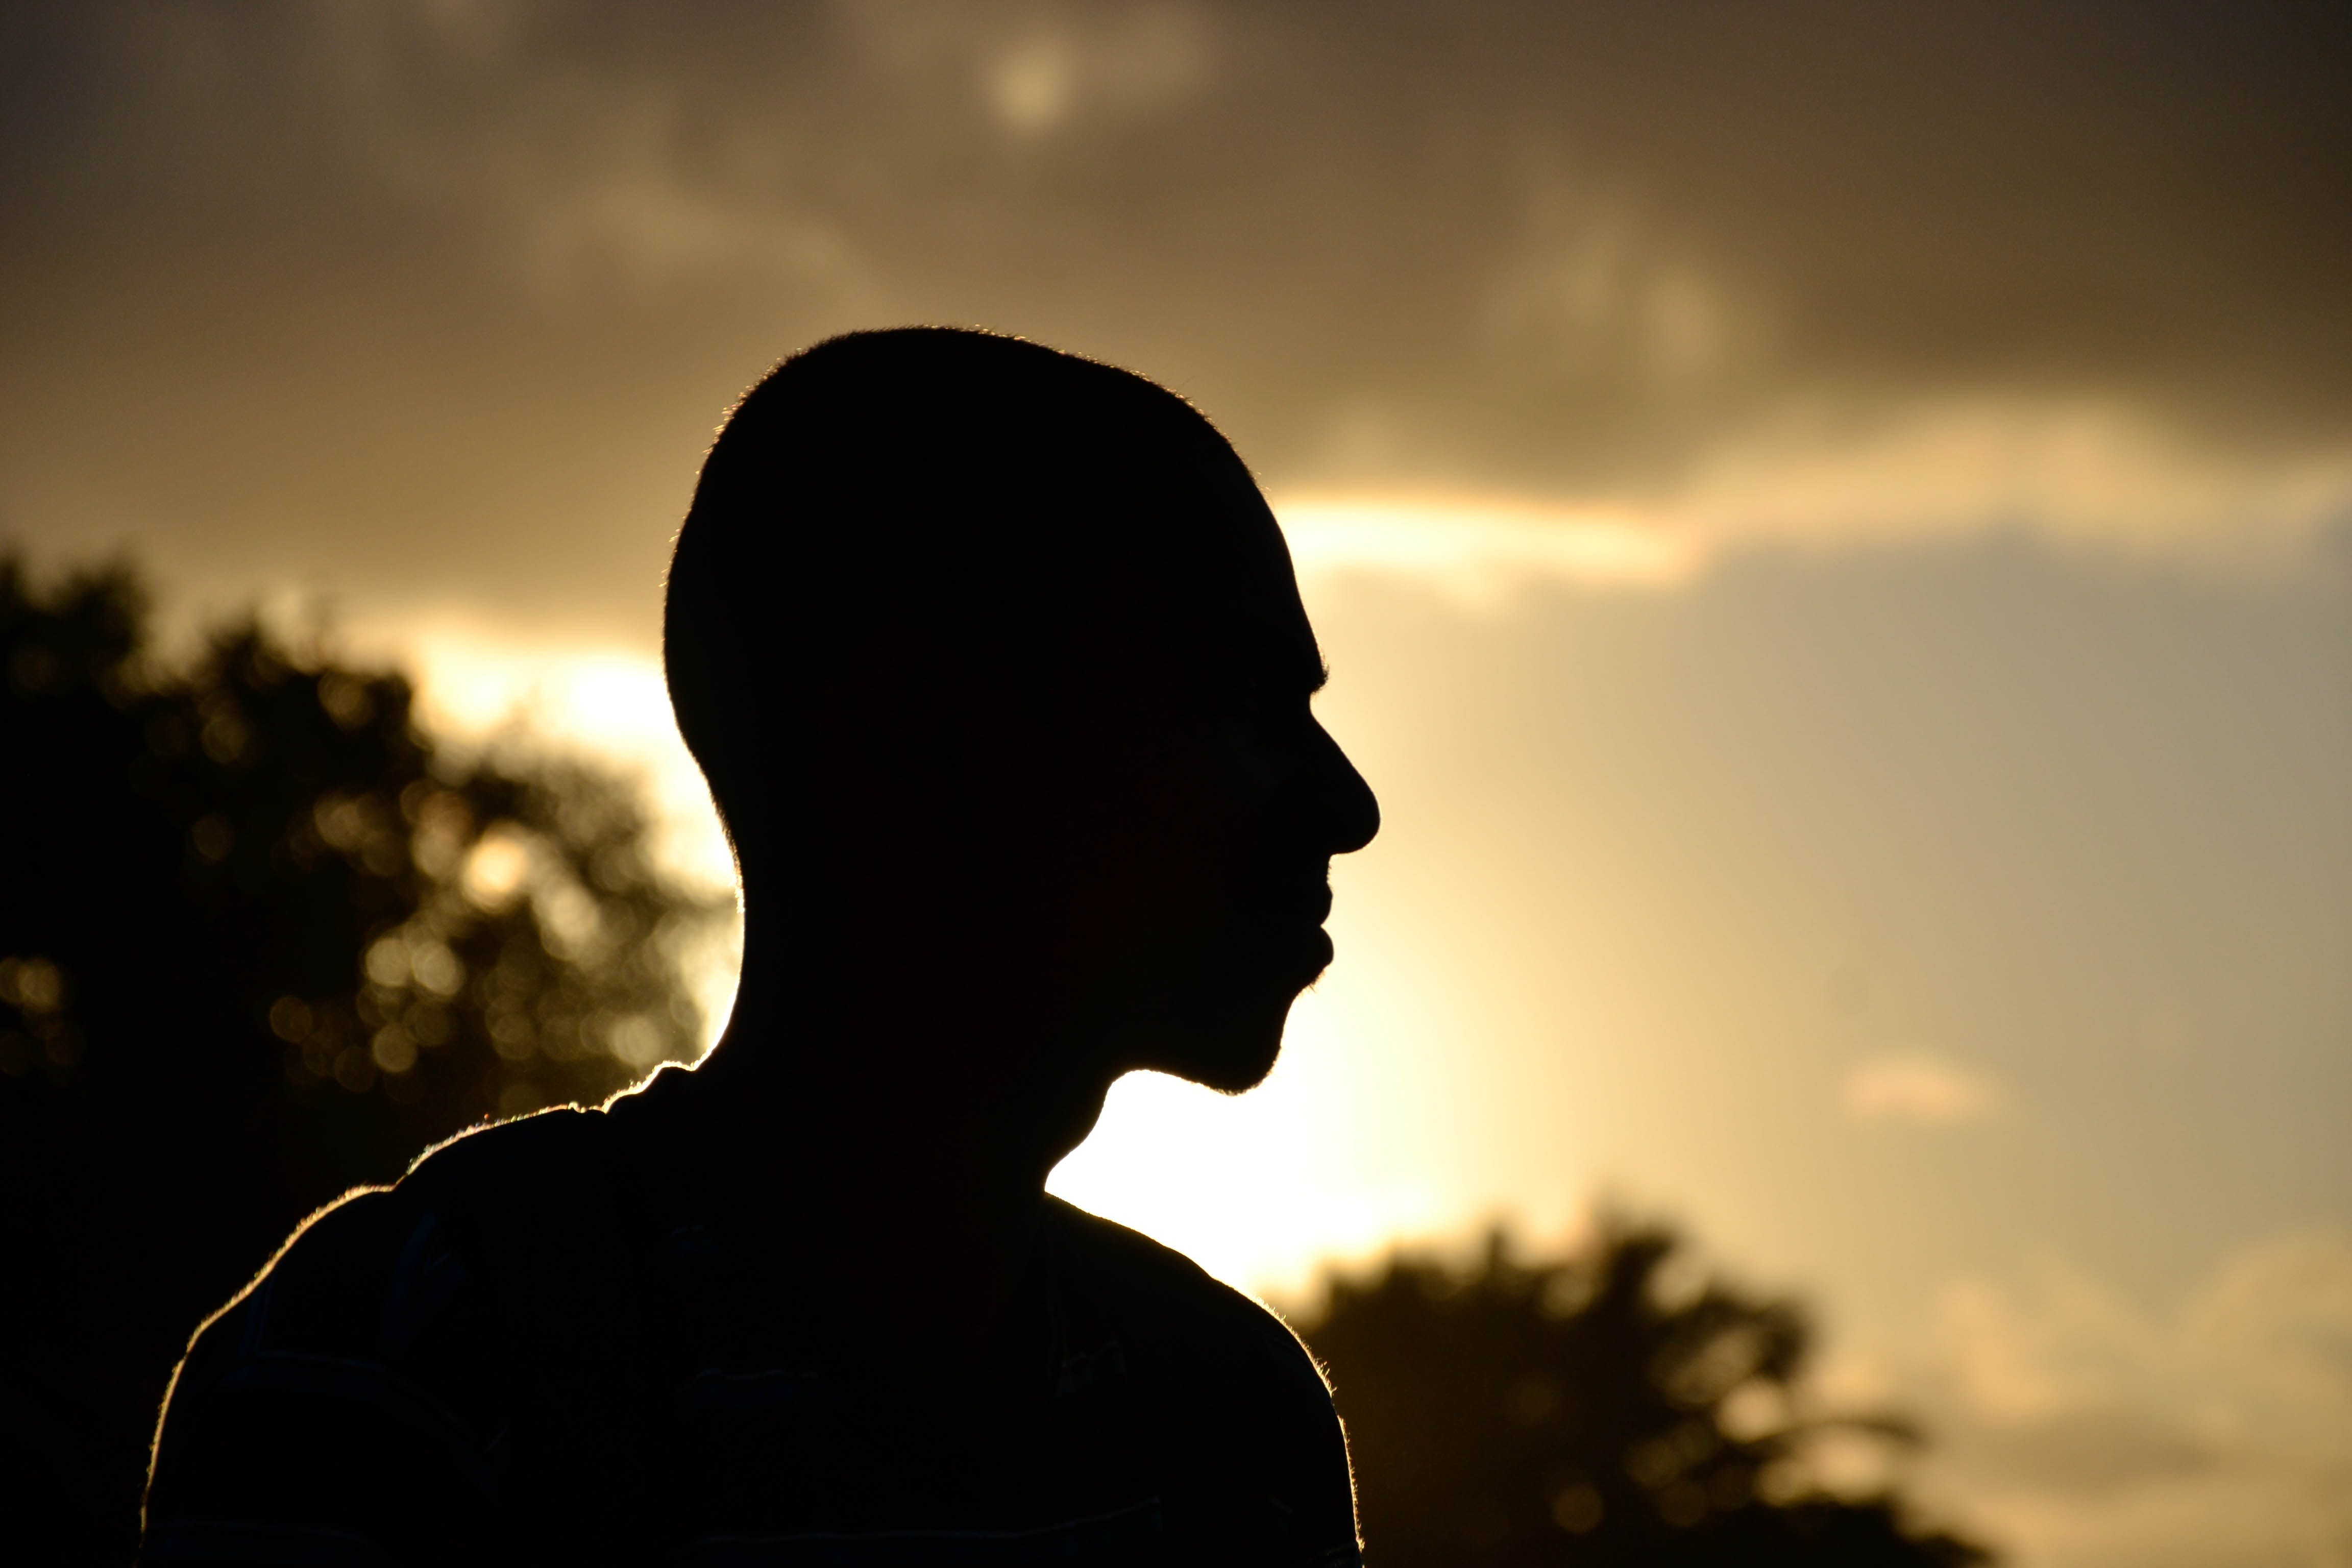 Close-up Portrait of Silhouette Man